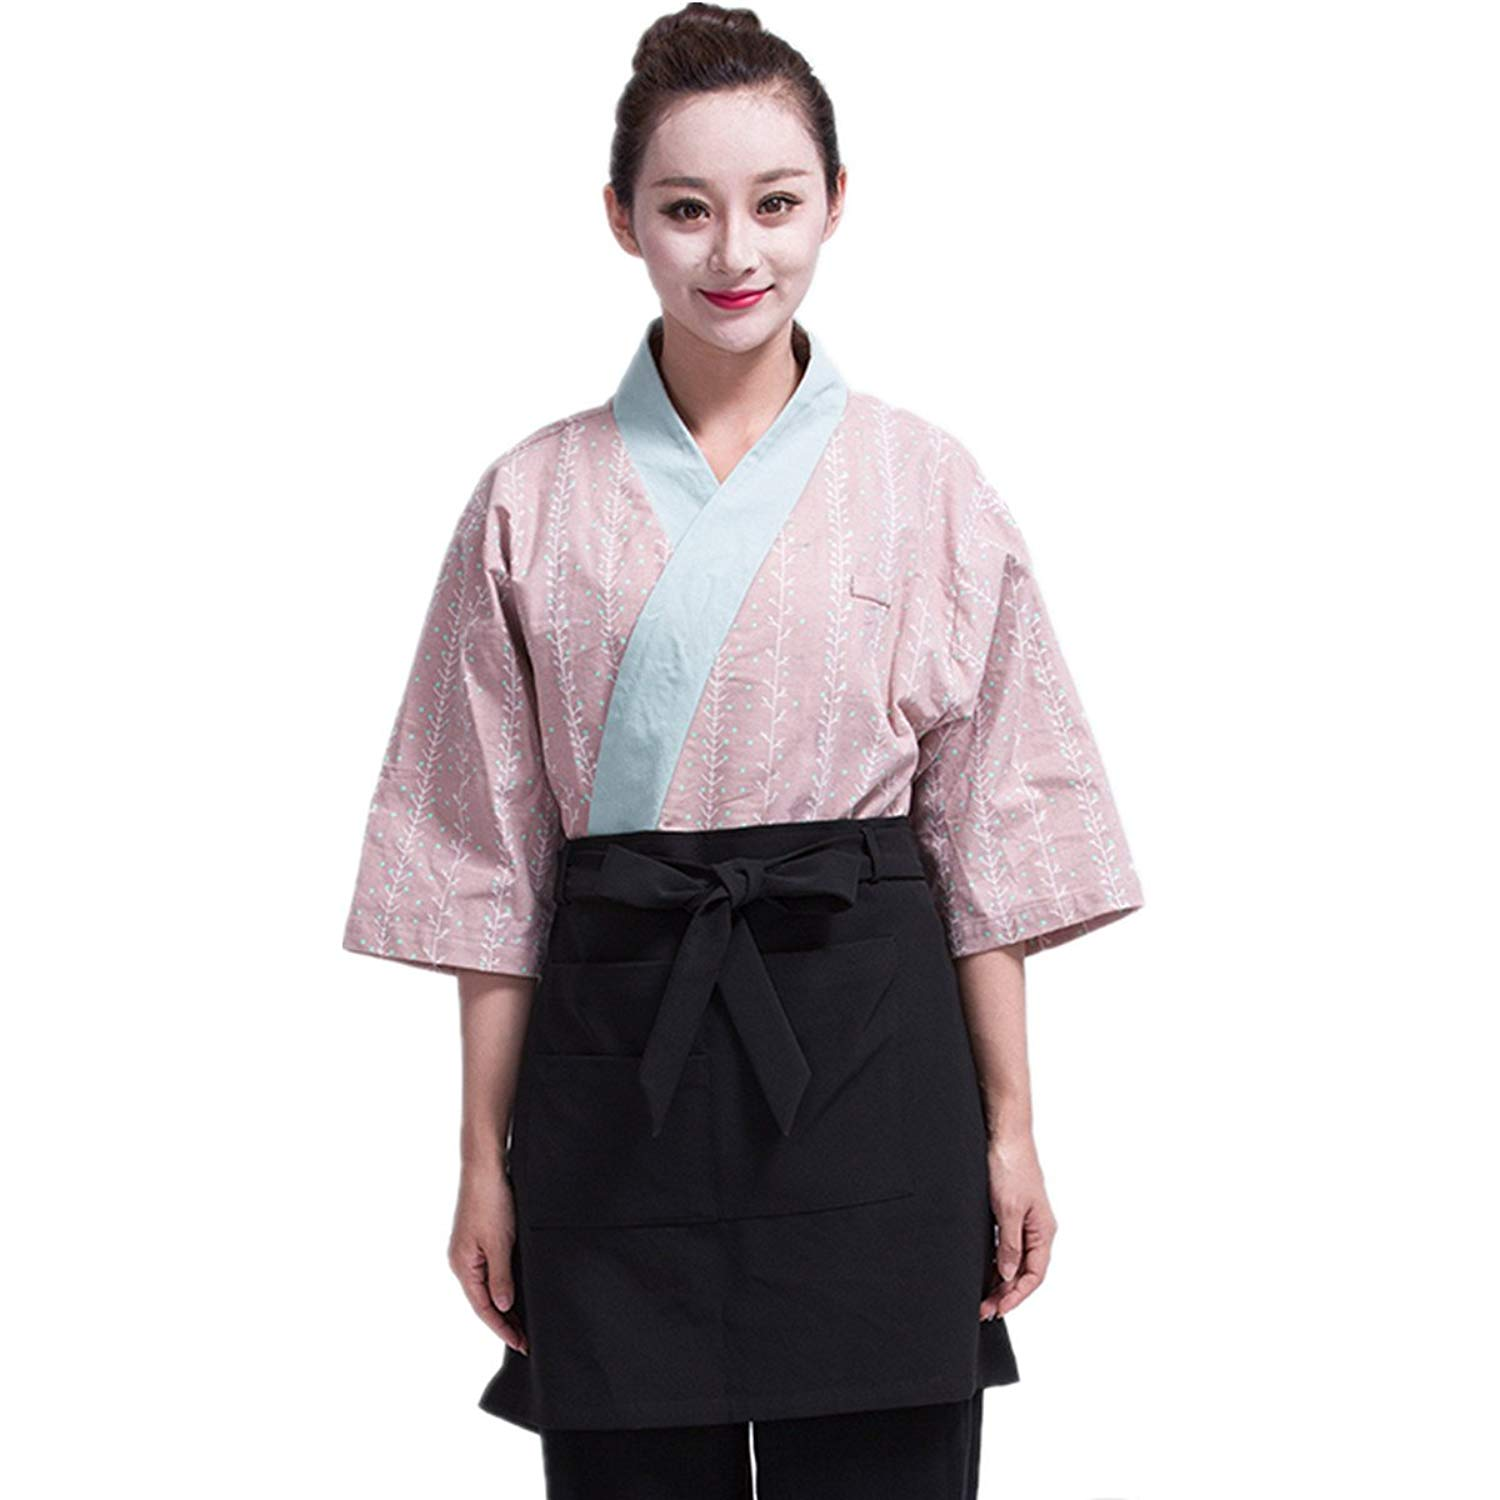 XINFU Sushi Waiter Branch Printing 3/4 Long Sleeve Restaurant Japanese Kimono Kitchen Work Uniform